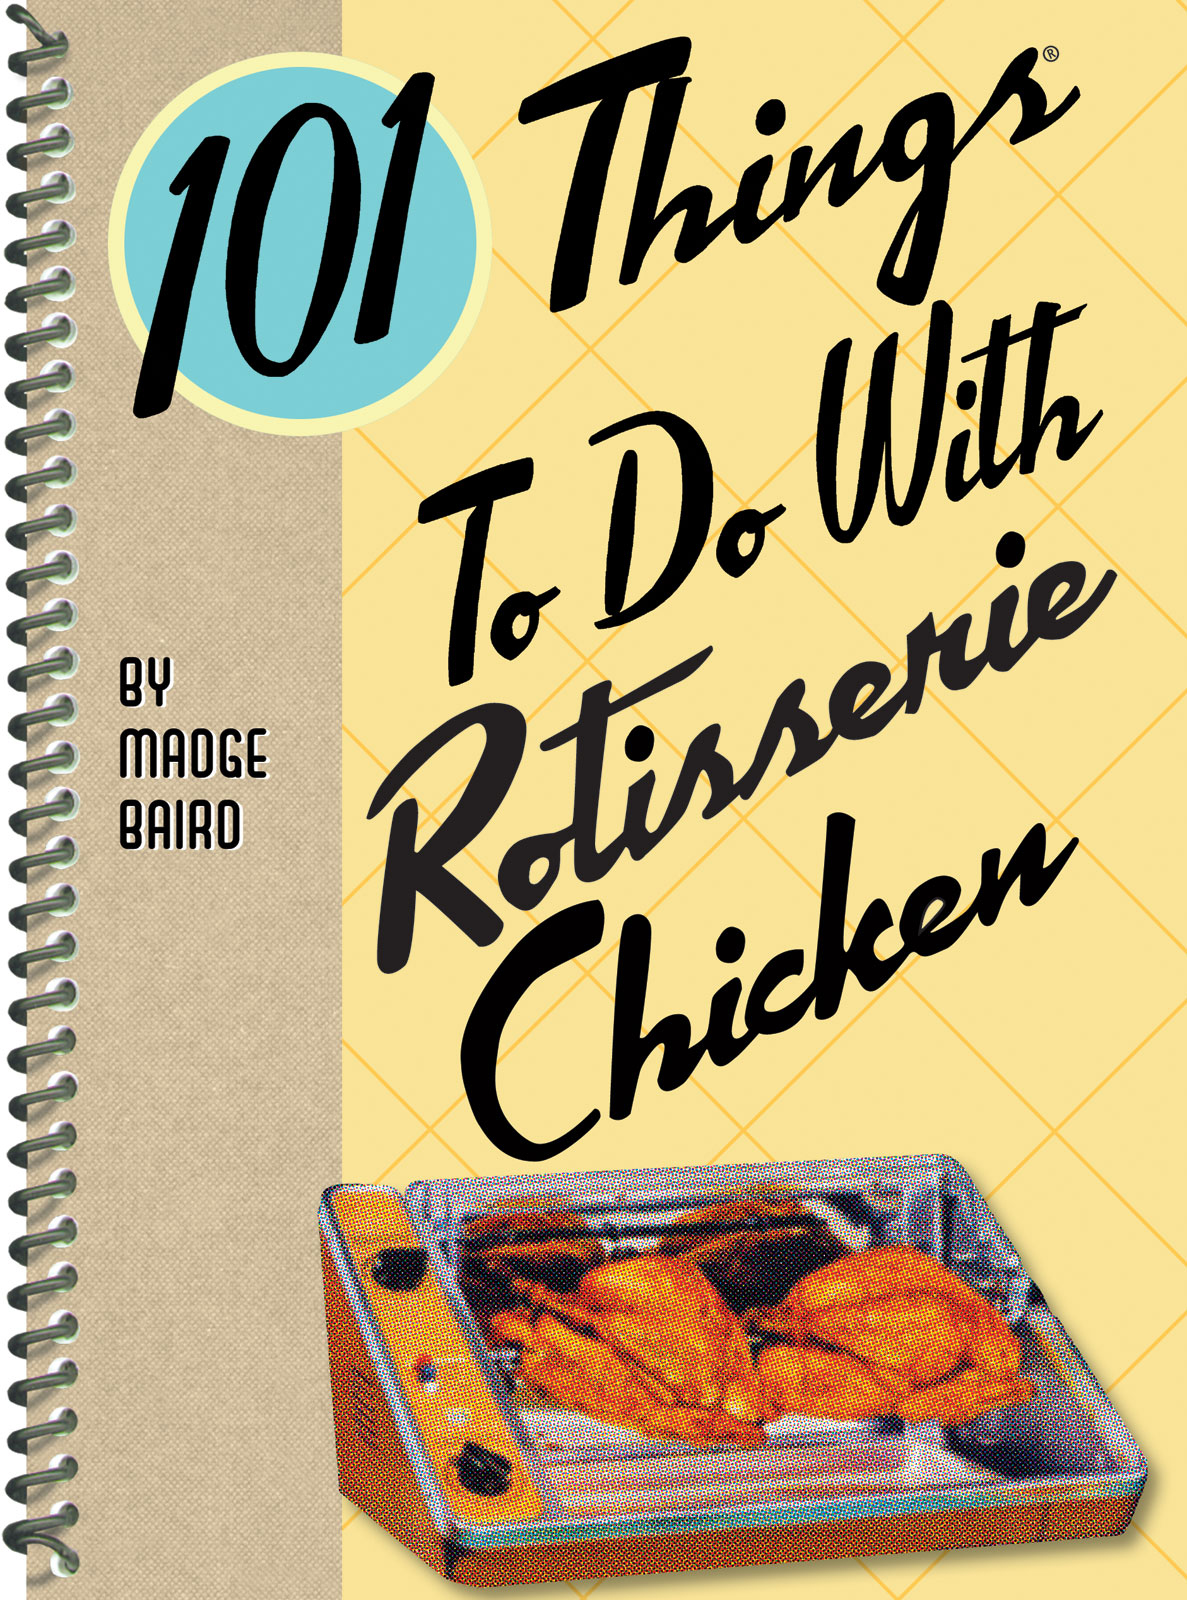 101 Things to do with Rotisserie Chicken By: Madge Baird